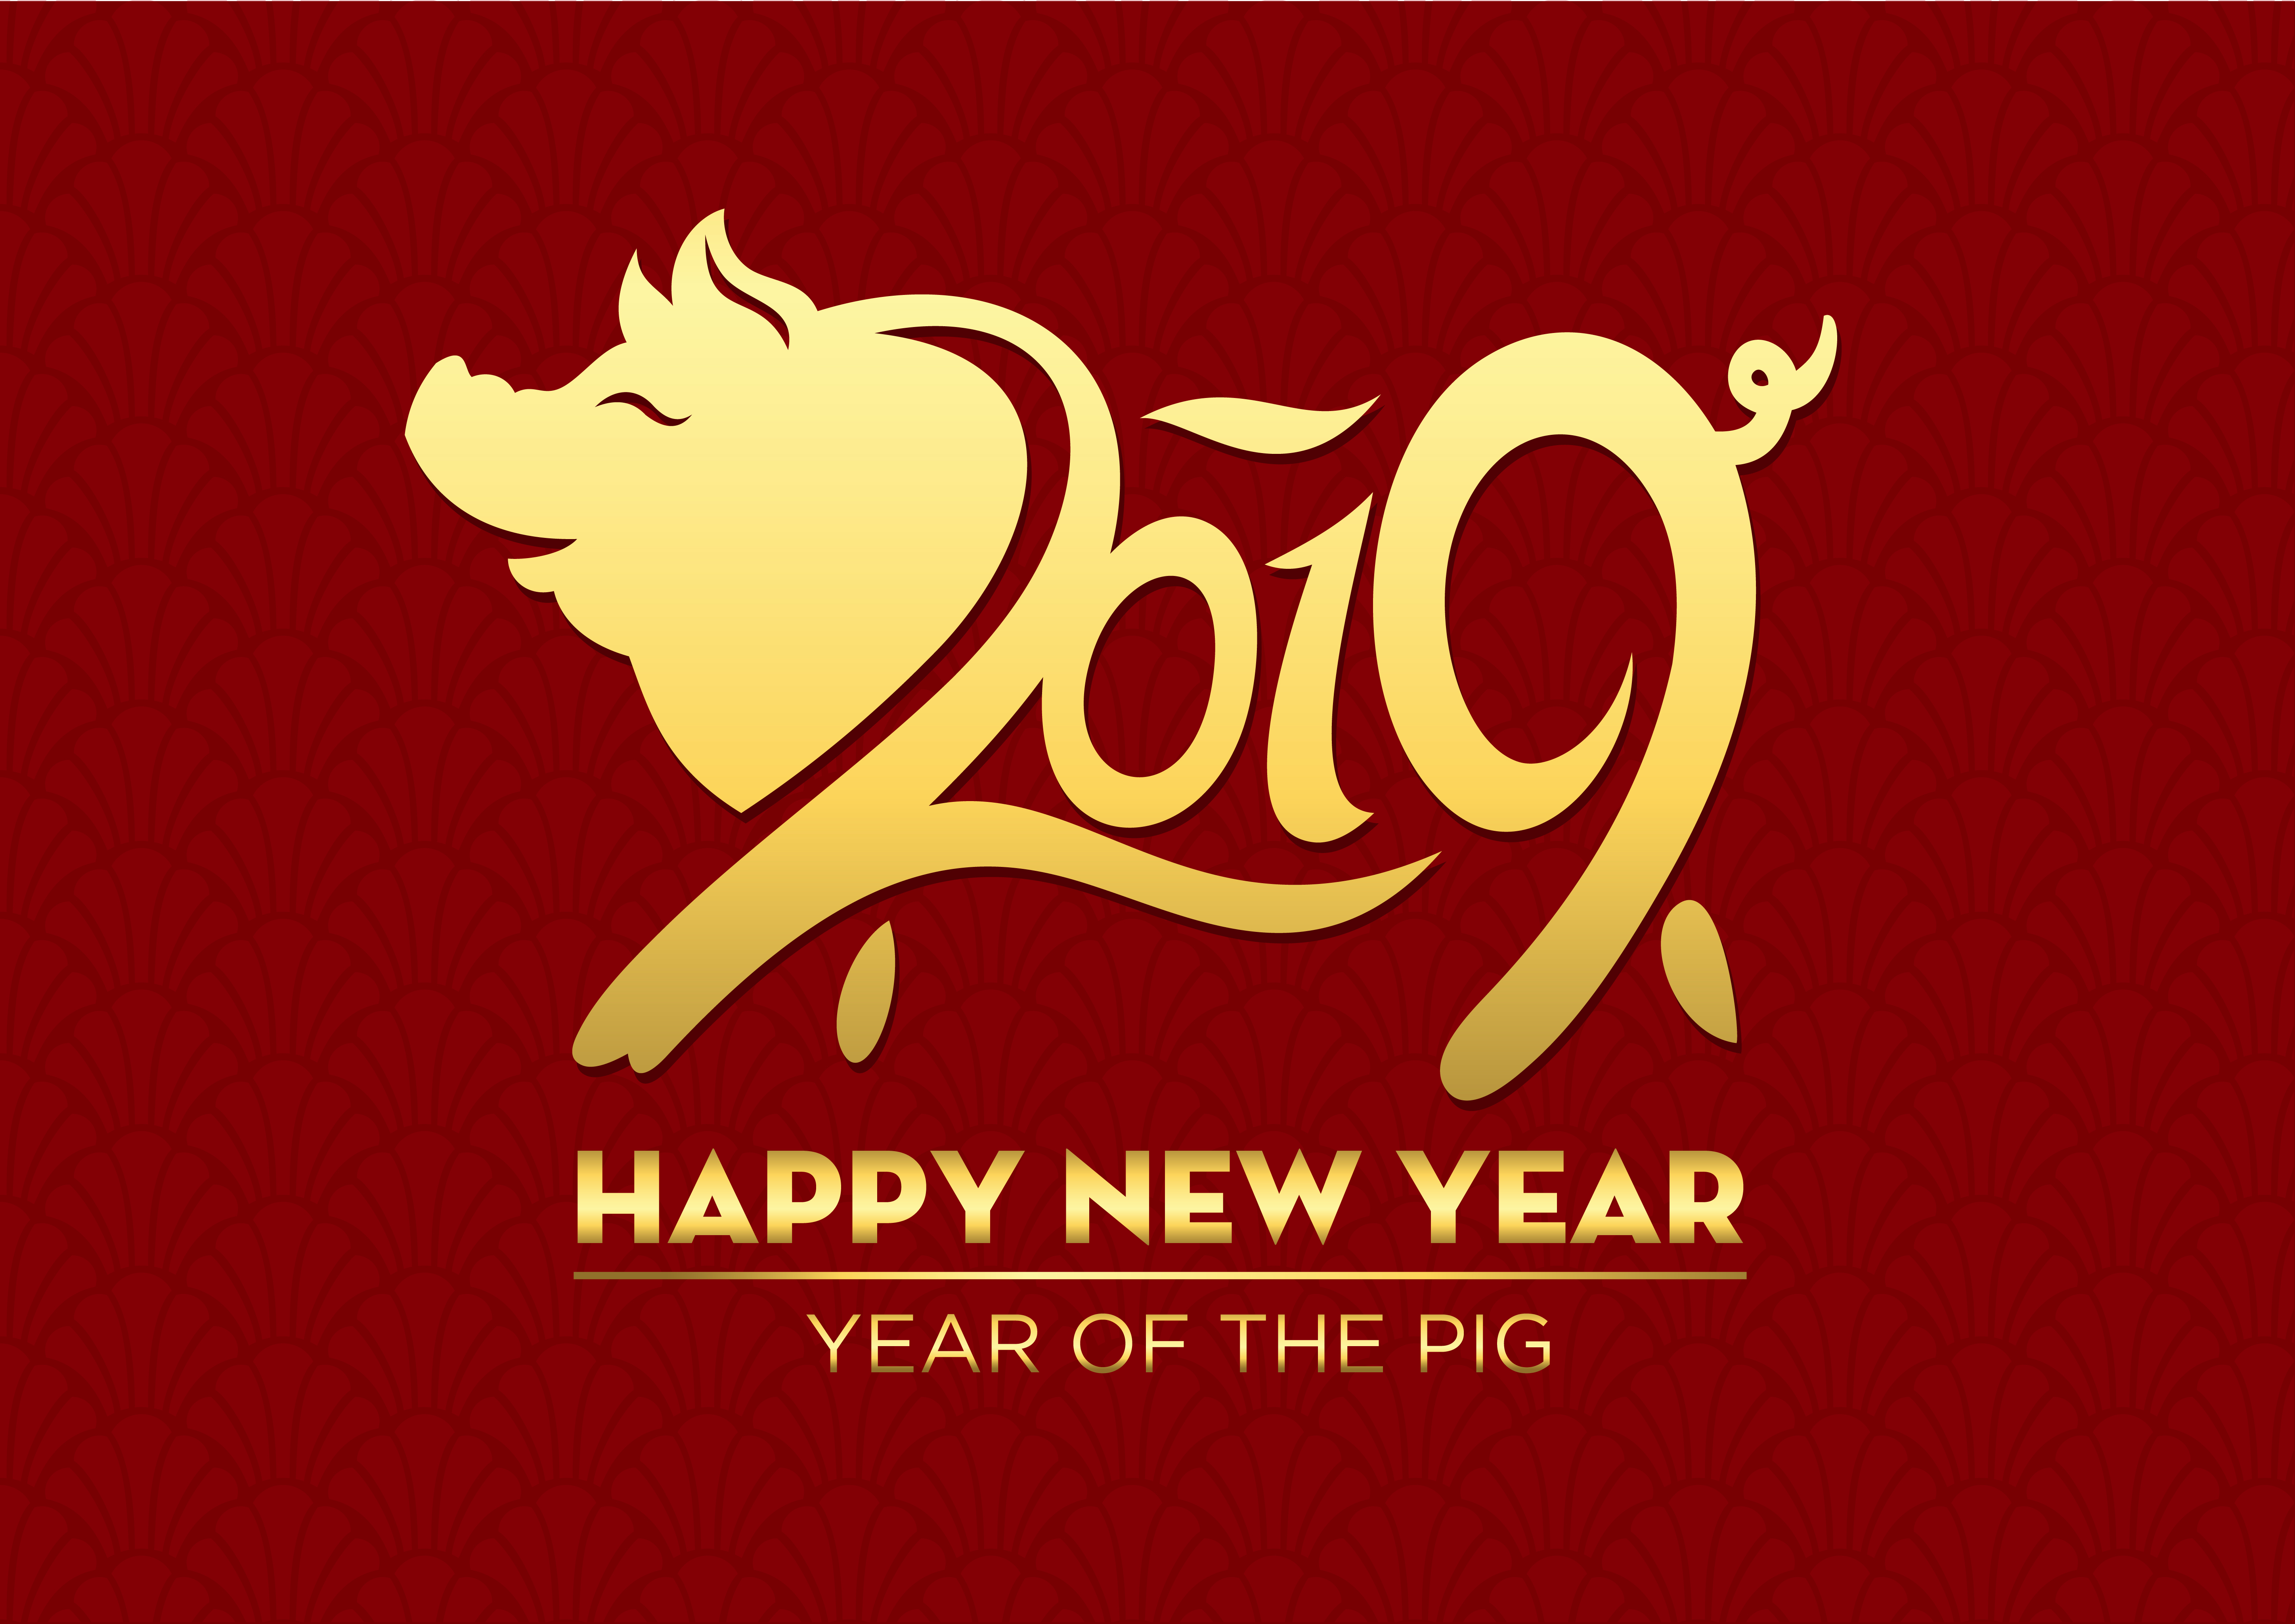 Highlights ahead in 'Year of the Pig' Image